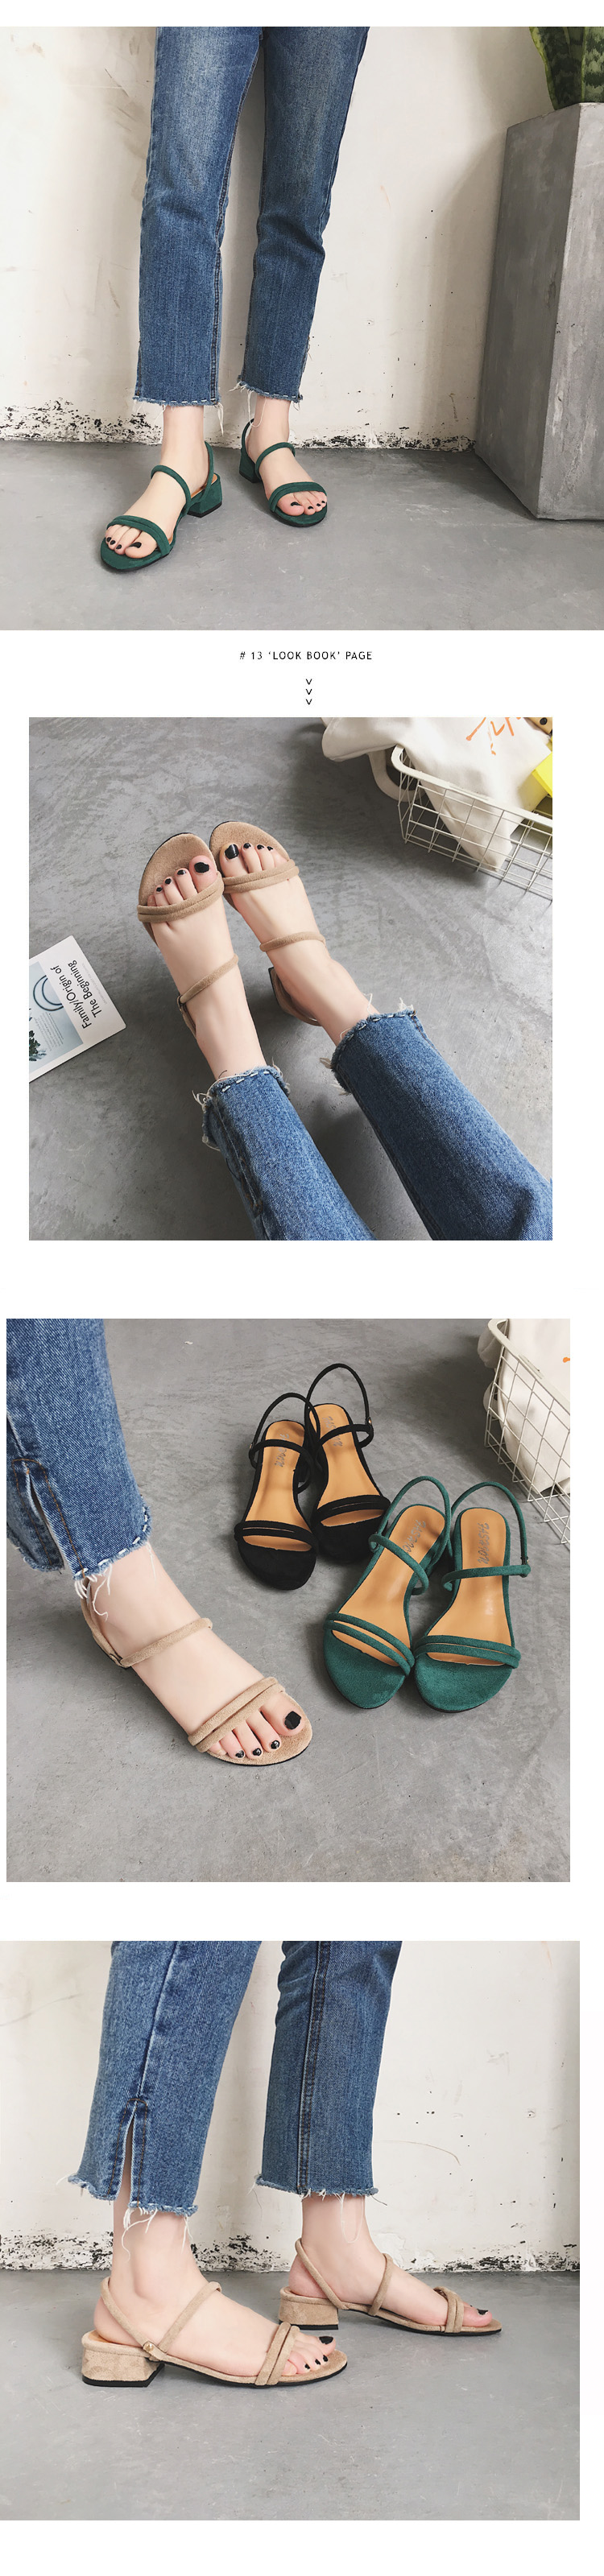 HTB1f7BcOMHqK1RjSZJnq6zNLpXaB new Flat outdoor slippers Sandals foot ring straps Roman sandals low slope with women's shoes low heel shoes Sandals mujer